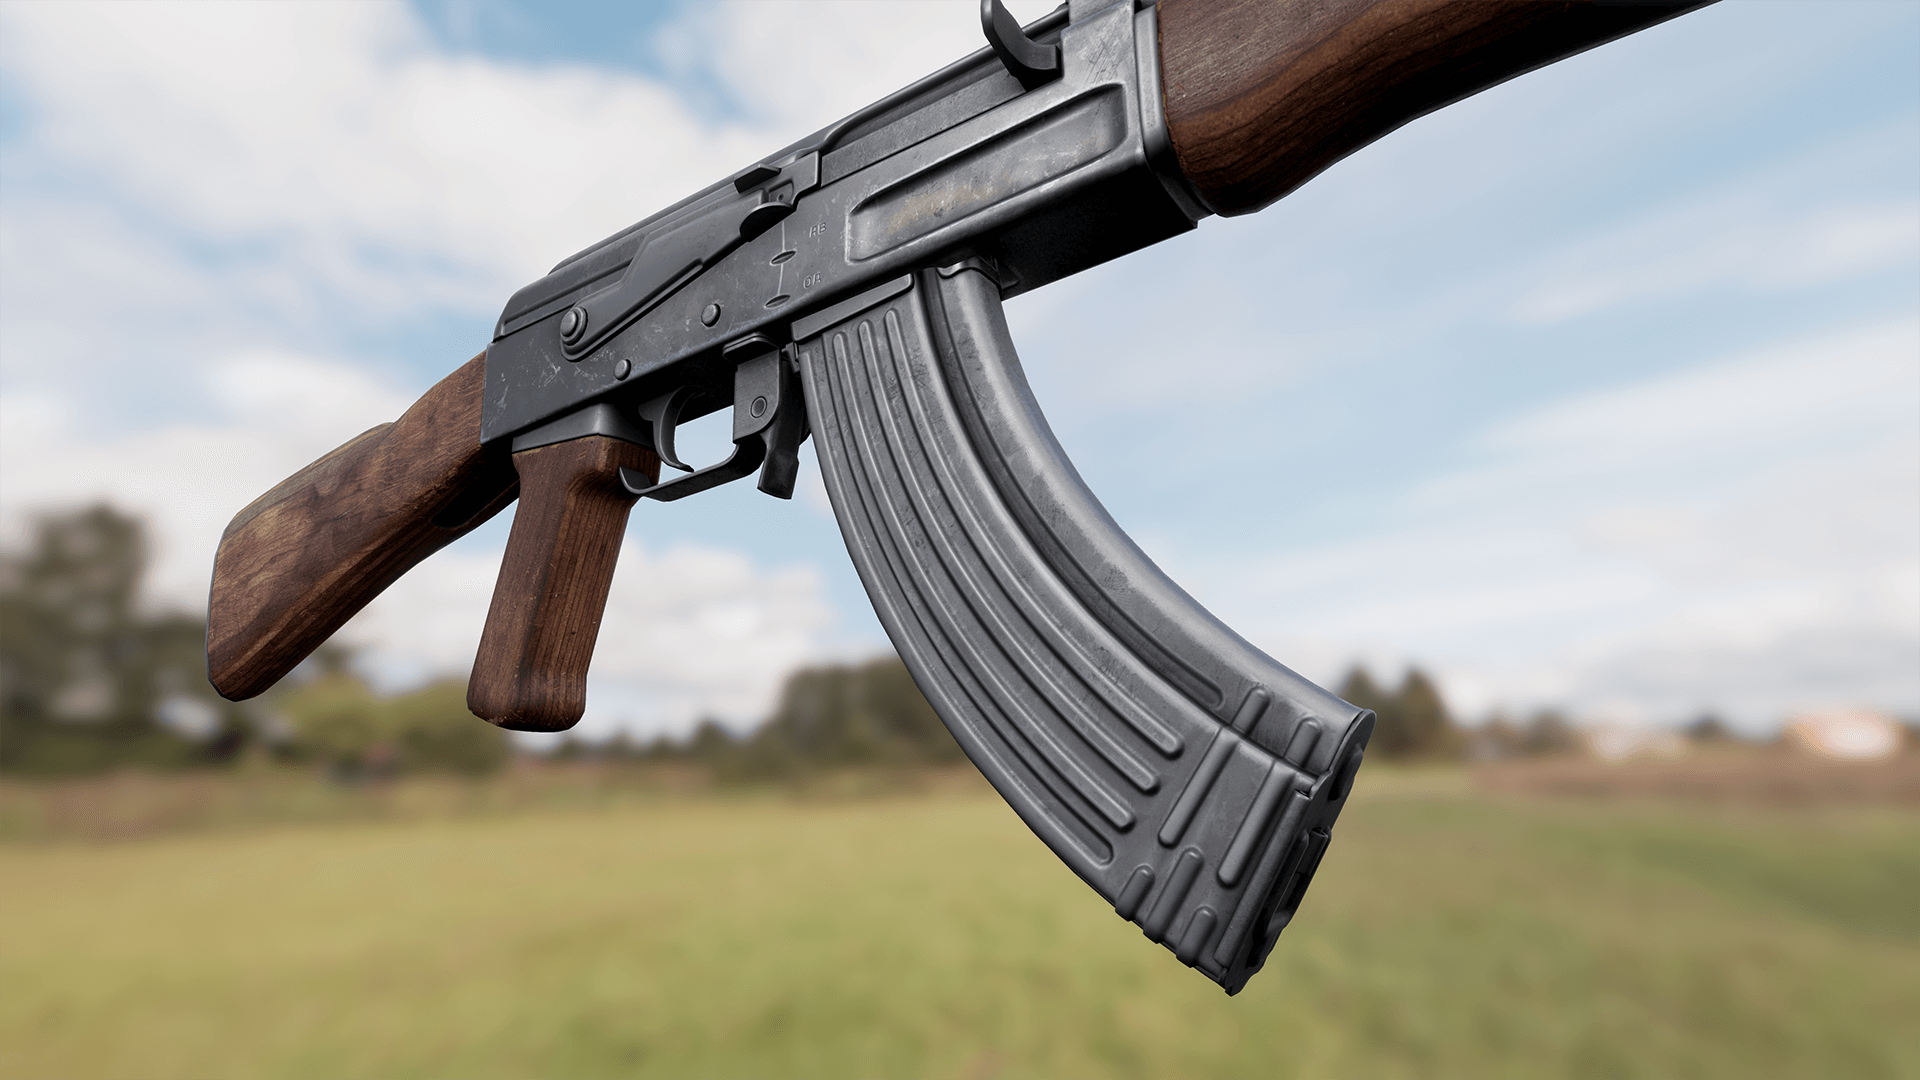 Animated AK47 Assault Rifle FPS Weapons Pack by Ironbelly